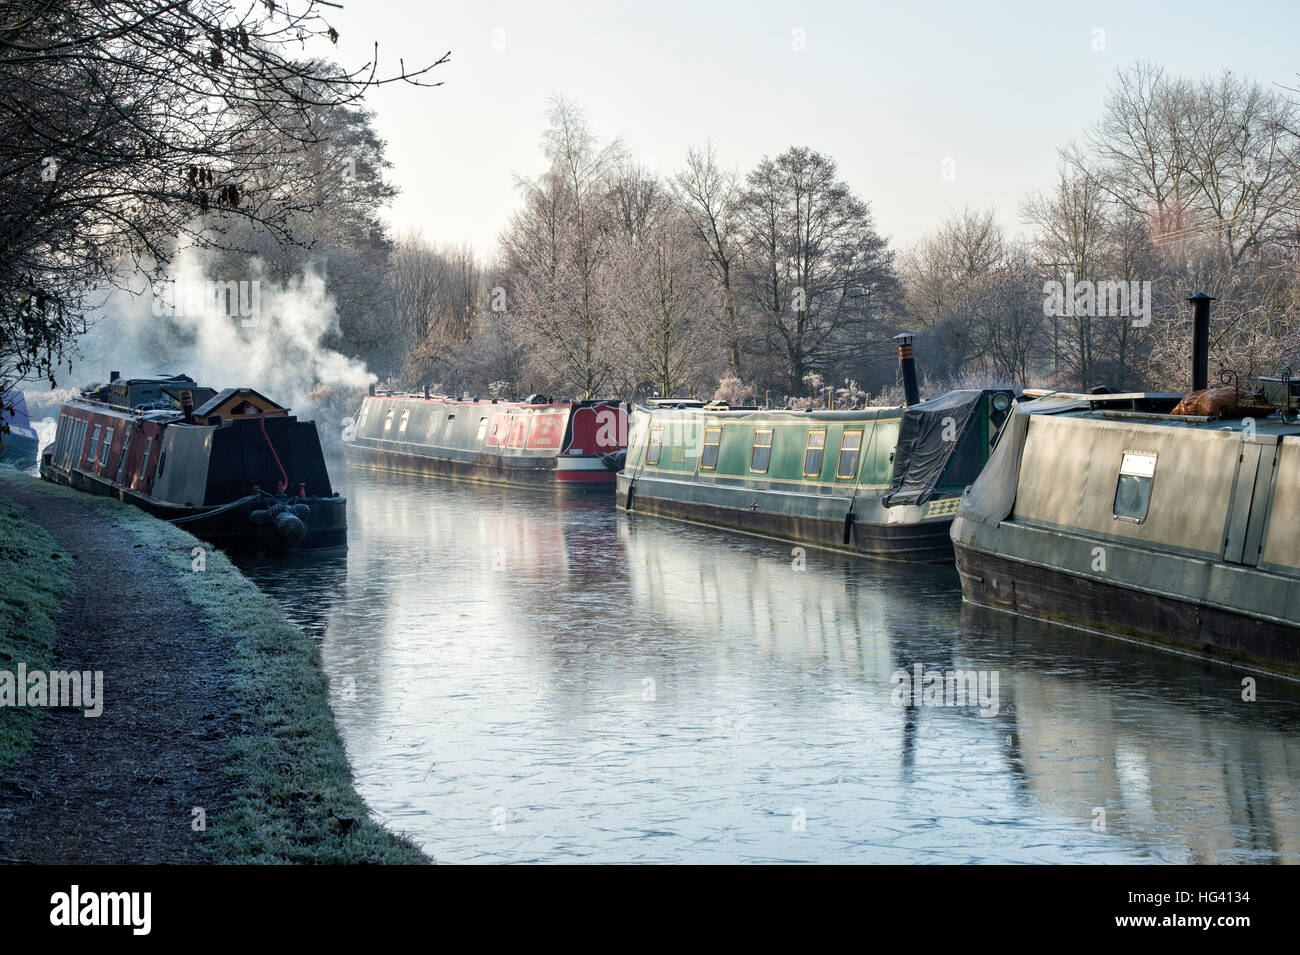 Canal boat with smoking chimney on the oxford canal on a frosty December morning. Cropredy, Oxfordshire, England - Stock Image